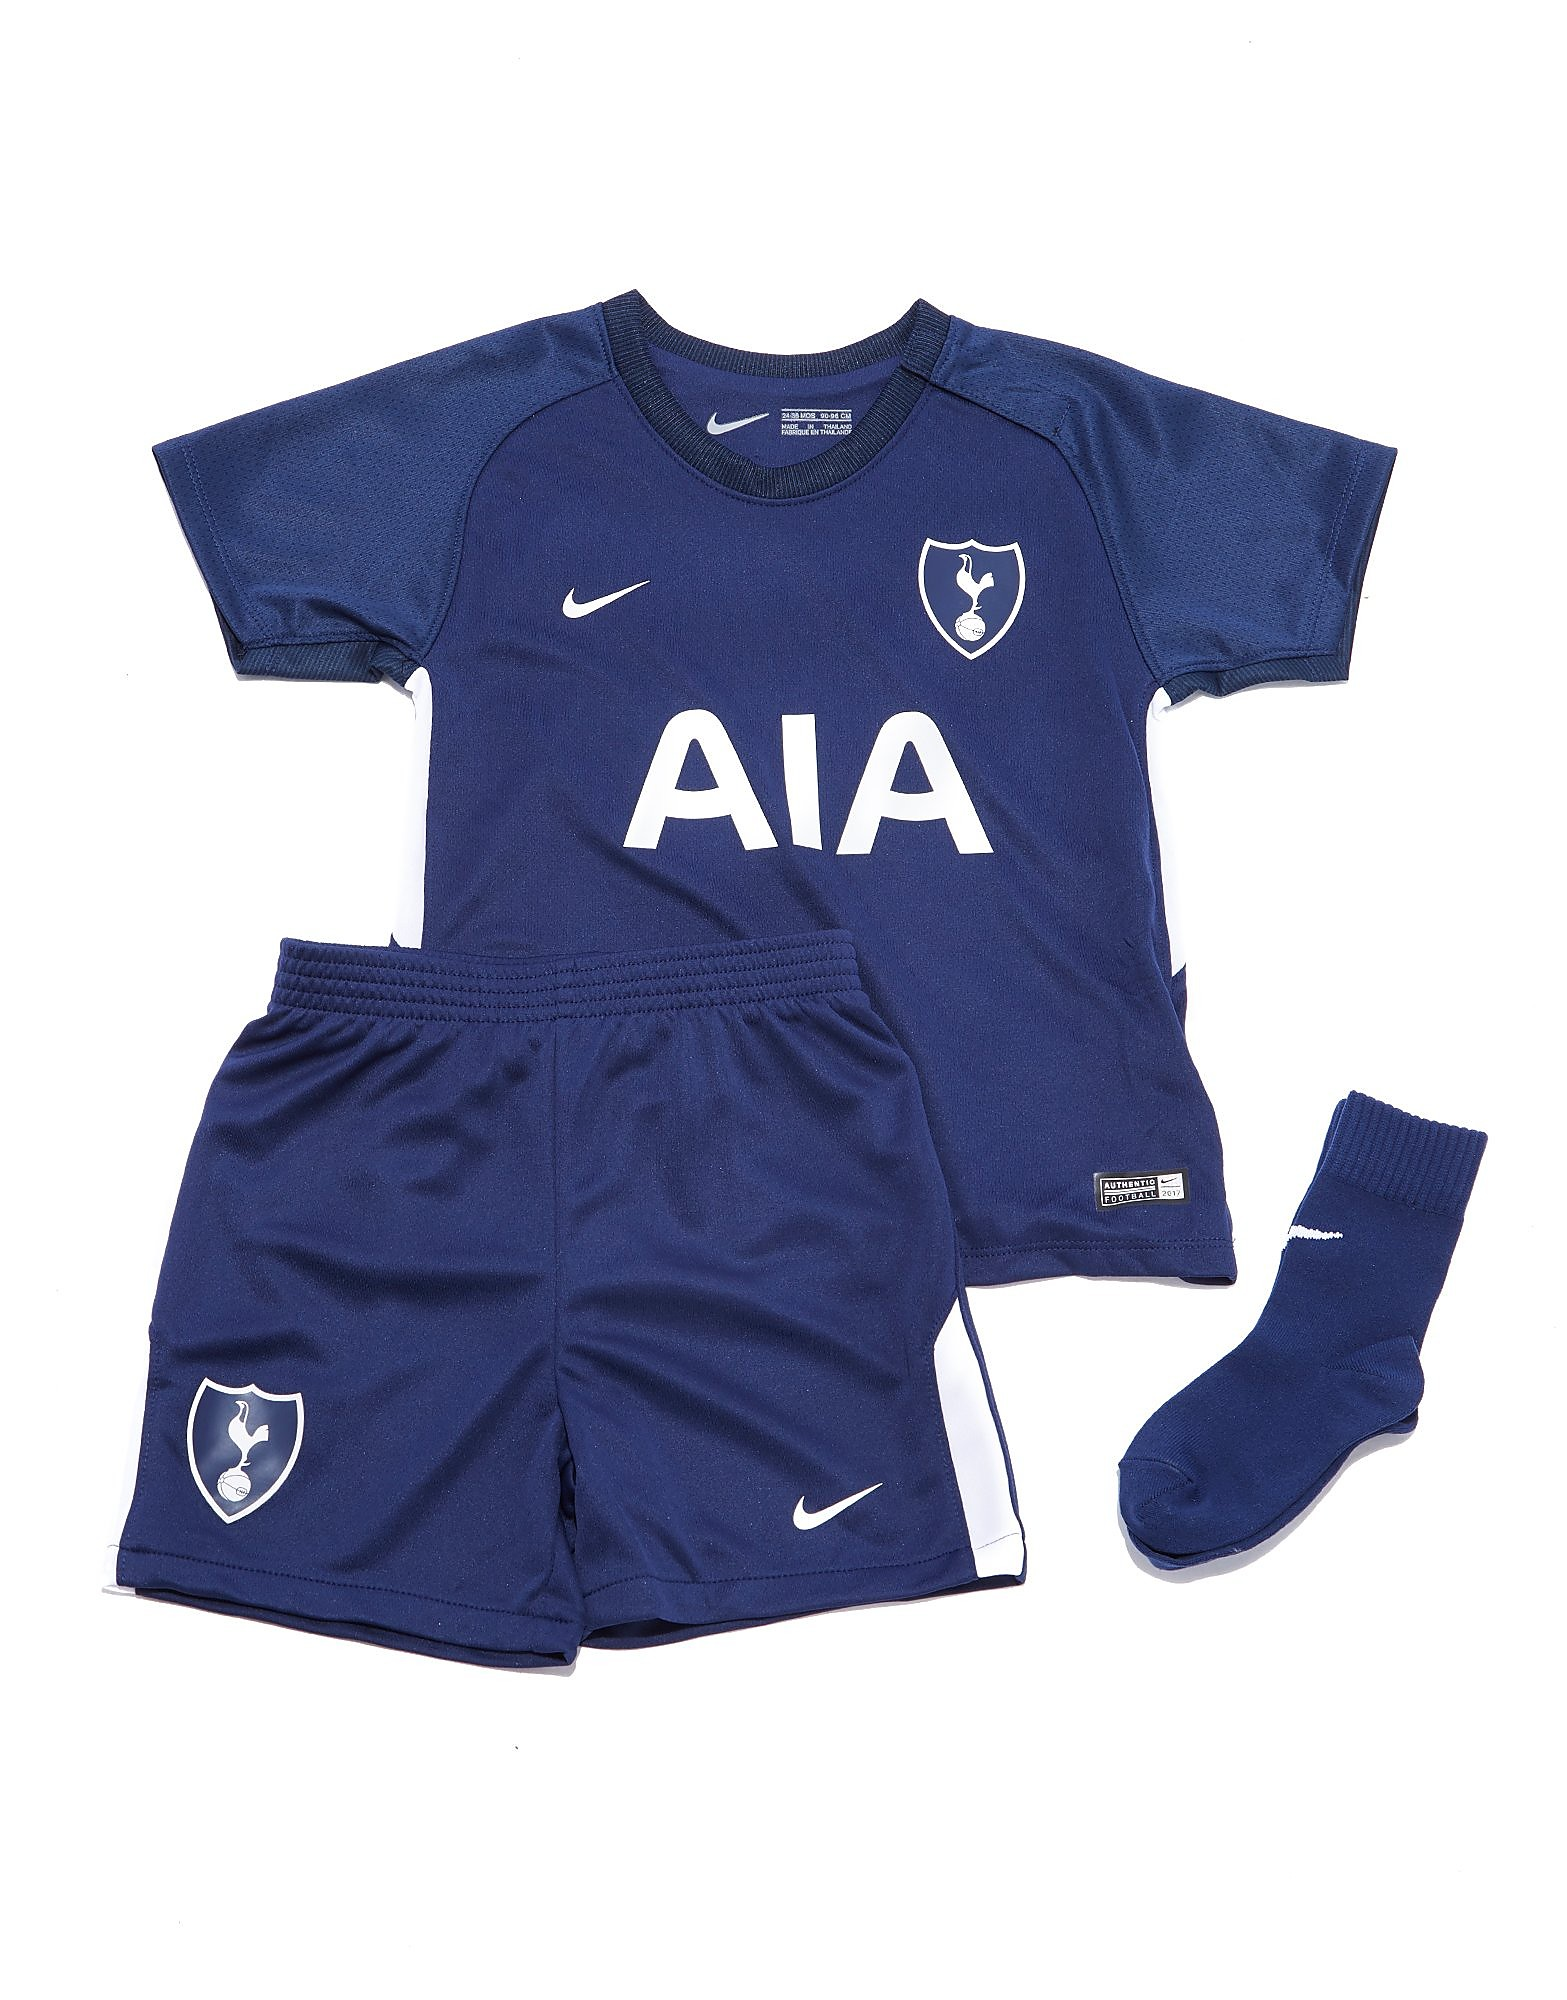 Nike Tottenham Hotspur 2017/18 Away Kit Infant PRE ORDE